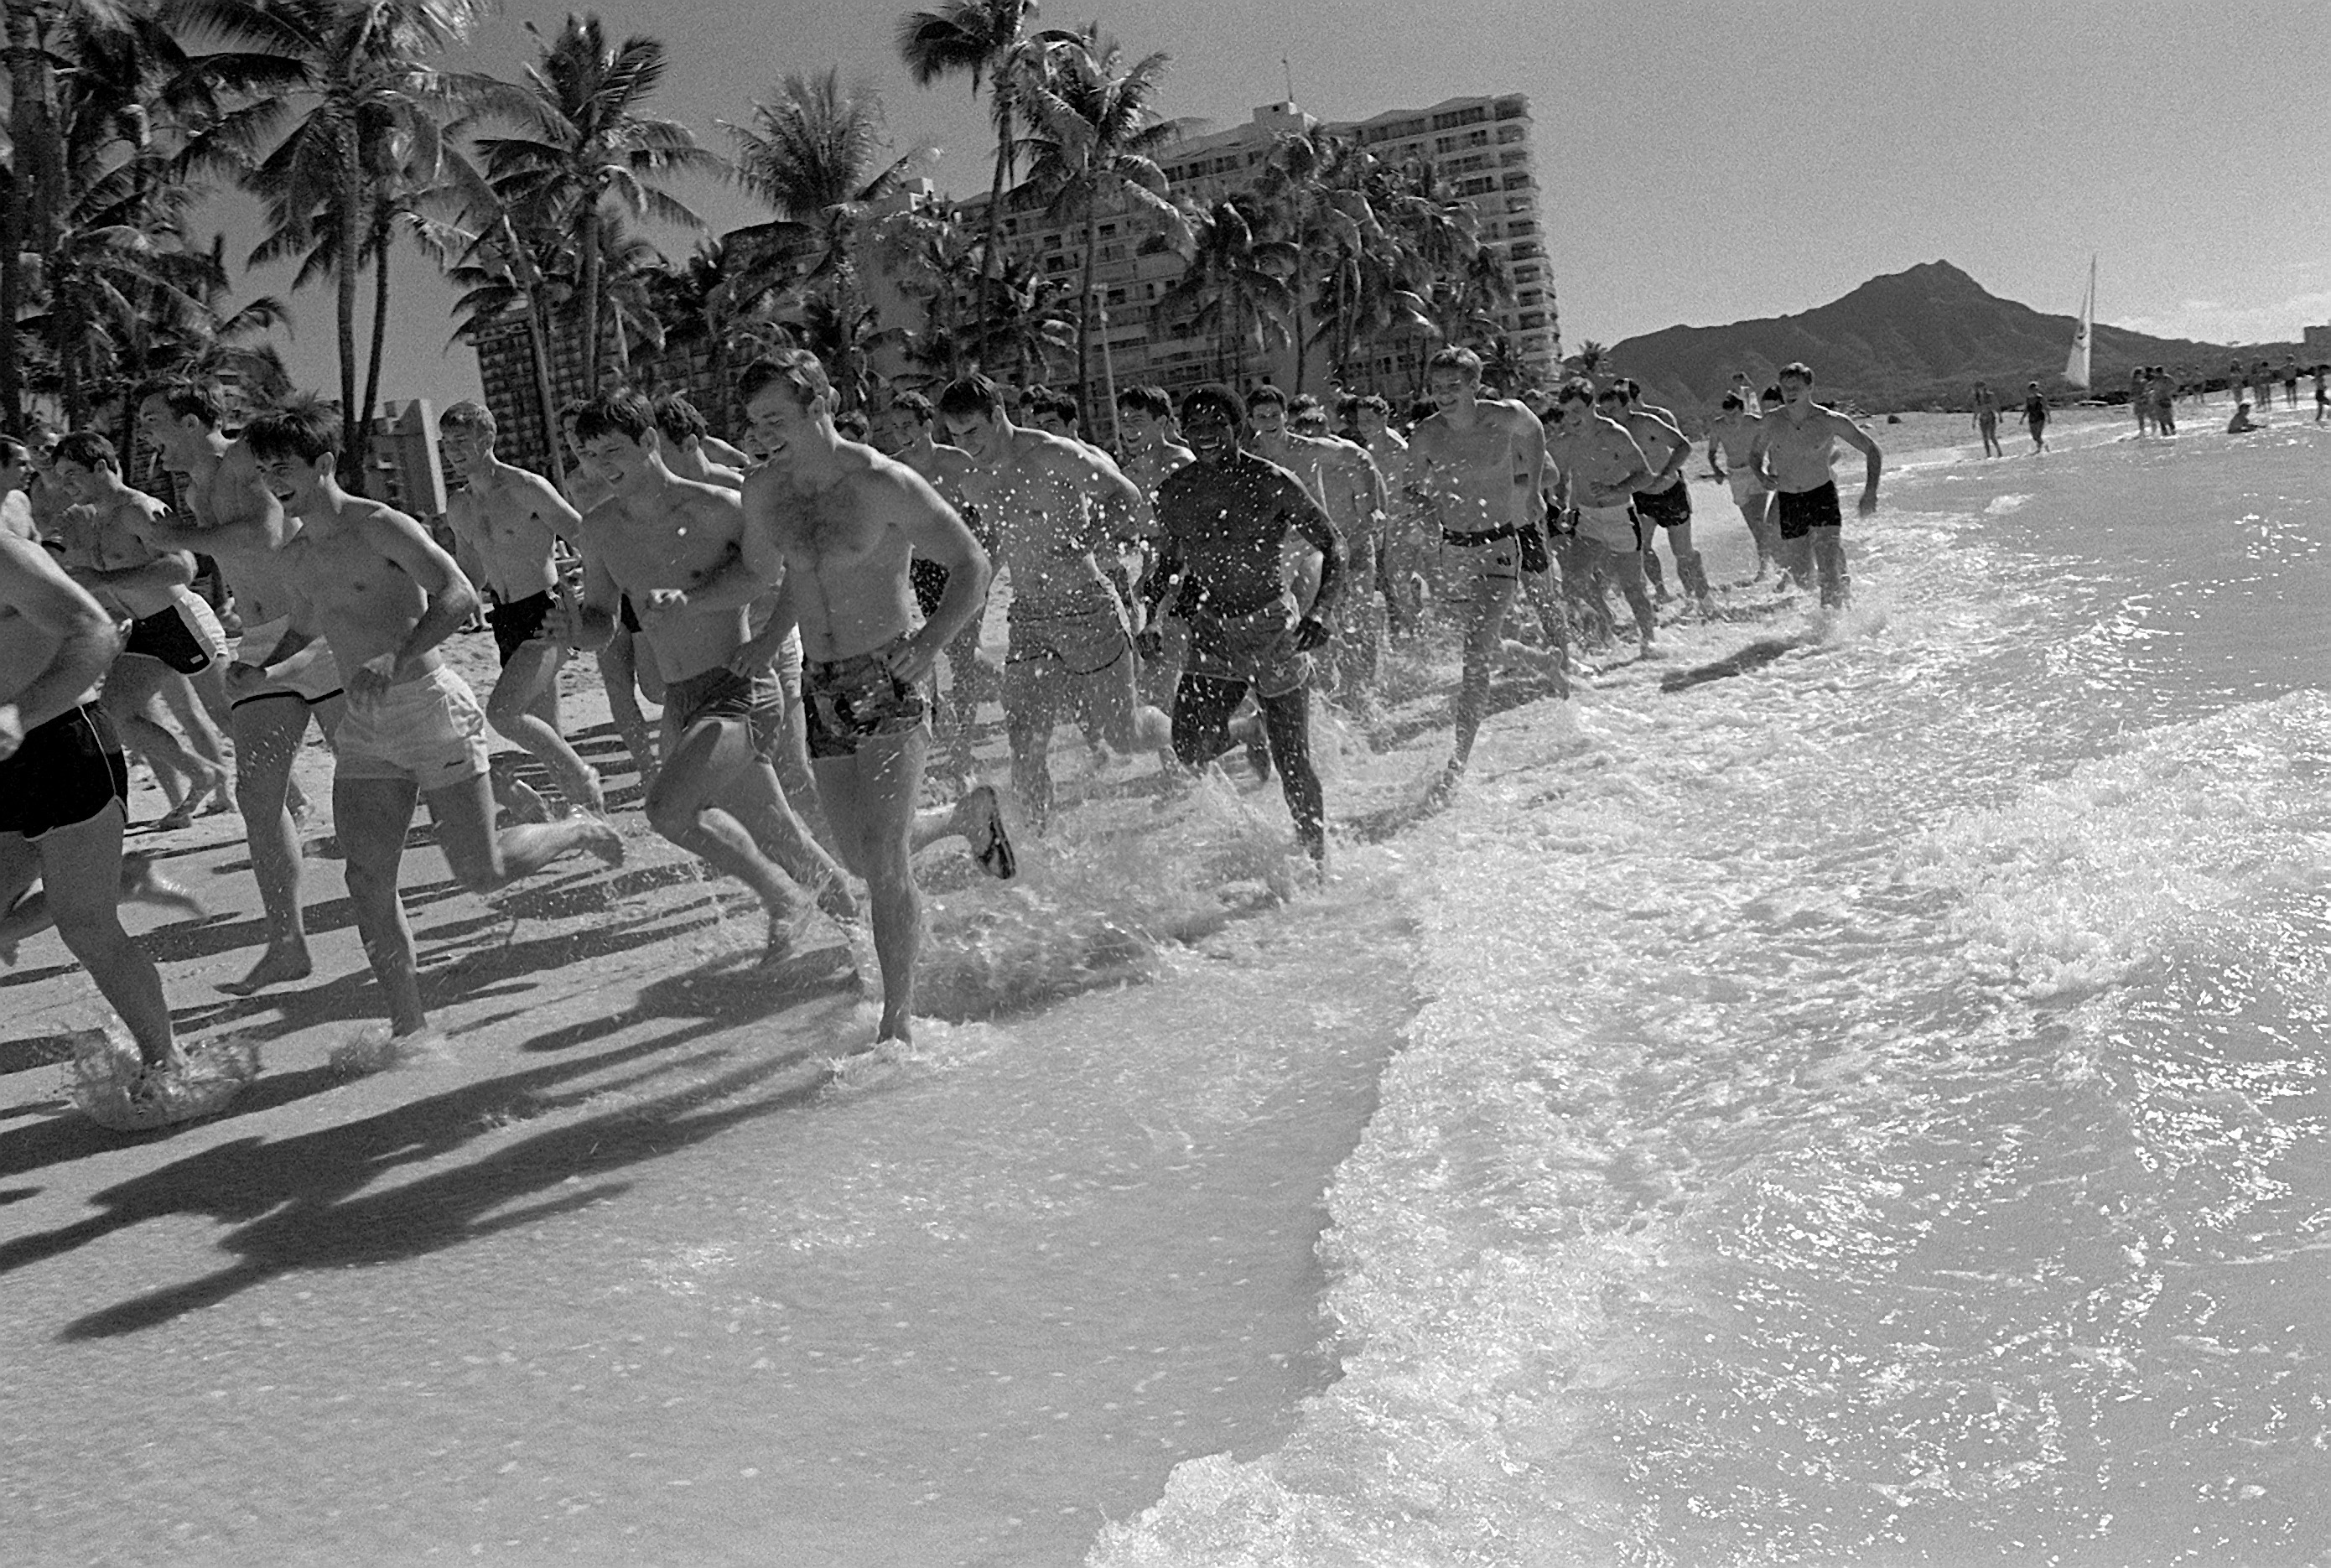 Members of the Air Force Academy football team job on Waikiki Beach before their game with the team from the University of Hawaii / Wikimedia Commons